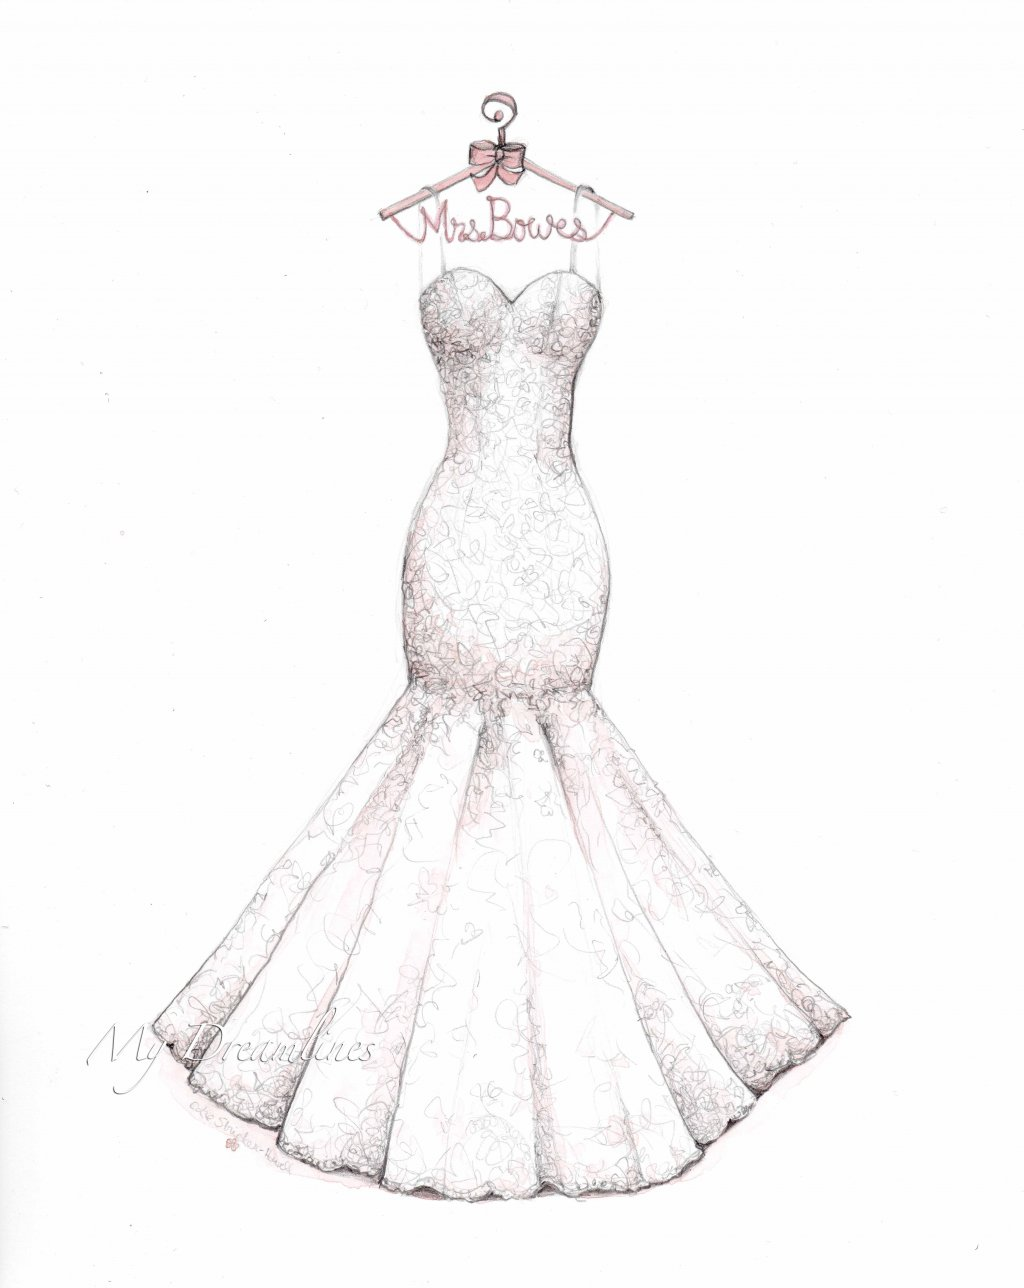 1024x1288 Lace Mermaid Wedding Dress Sketch With Decorative Hanger By Catie